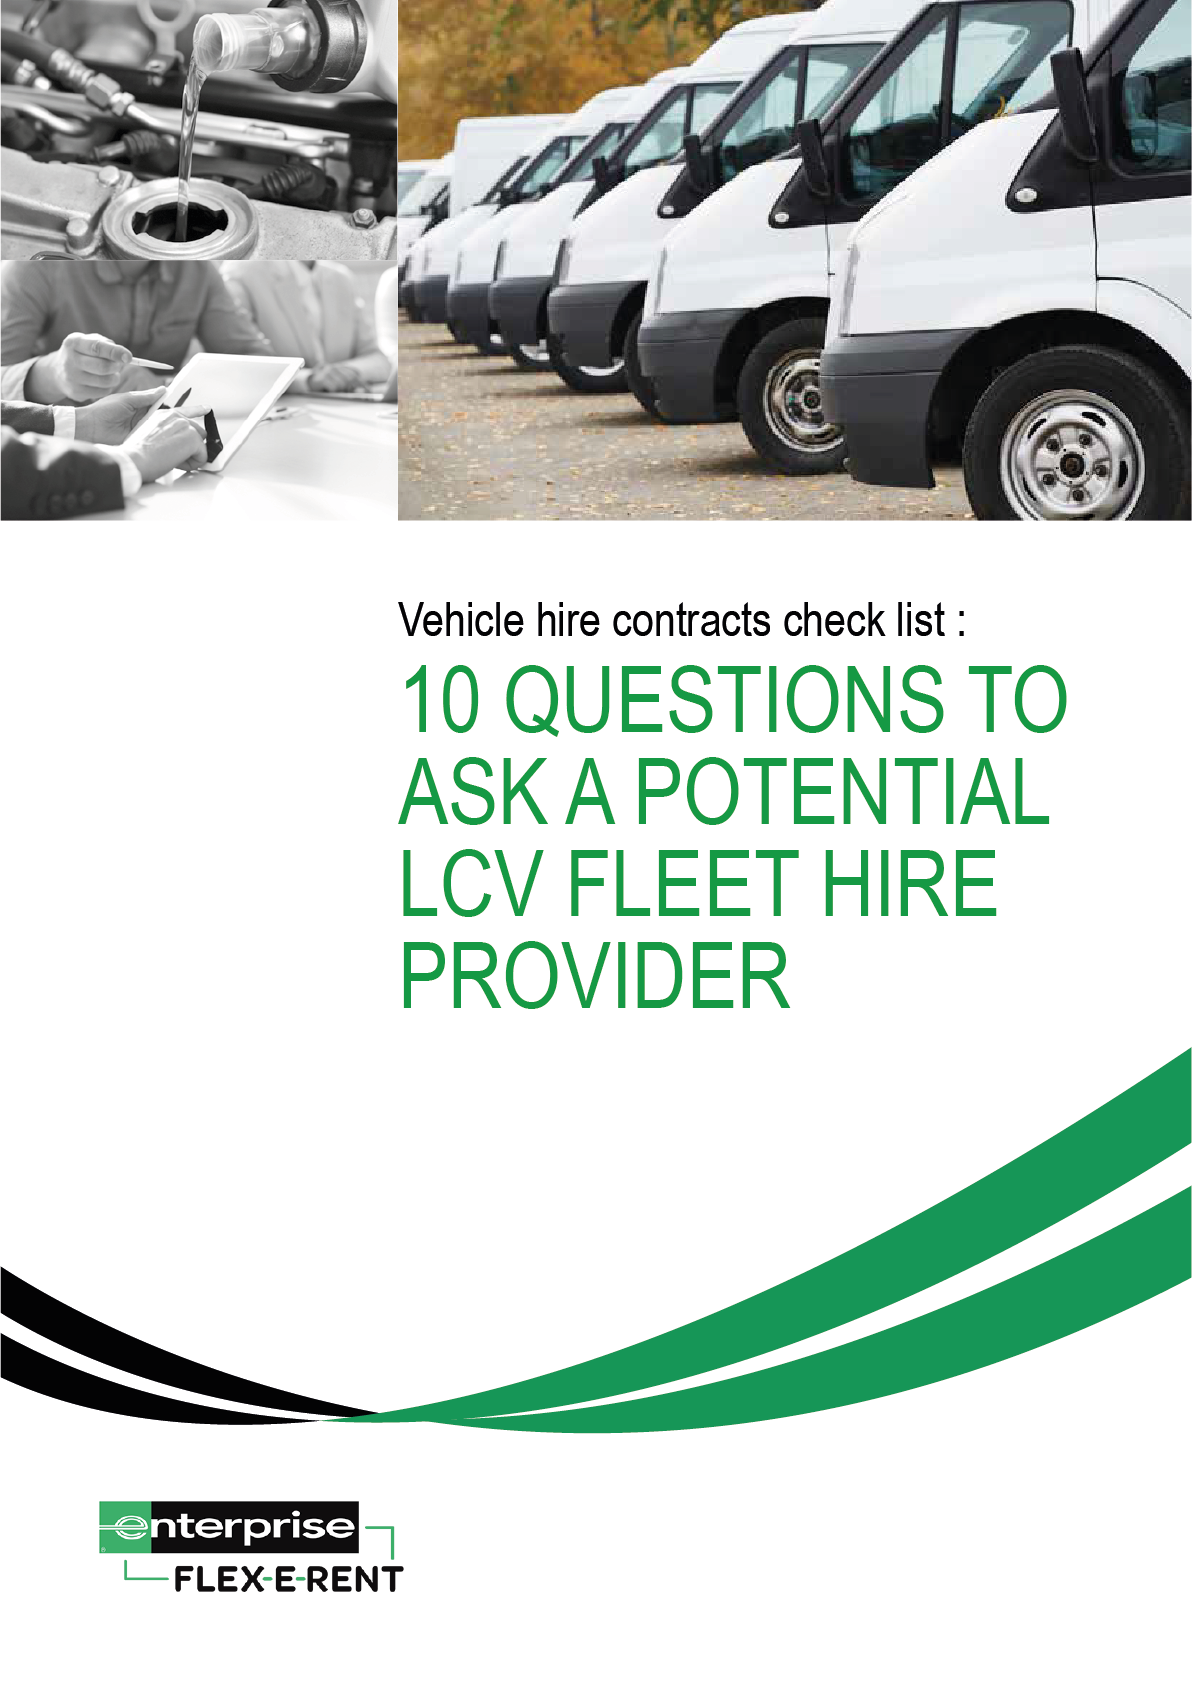 10 questions to ask a potential LCV fleet hire provider